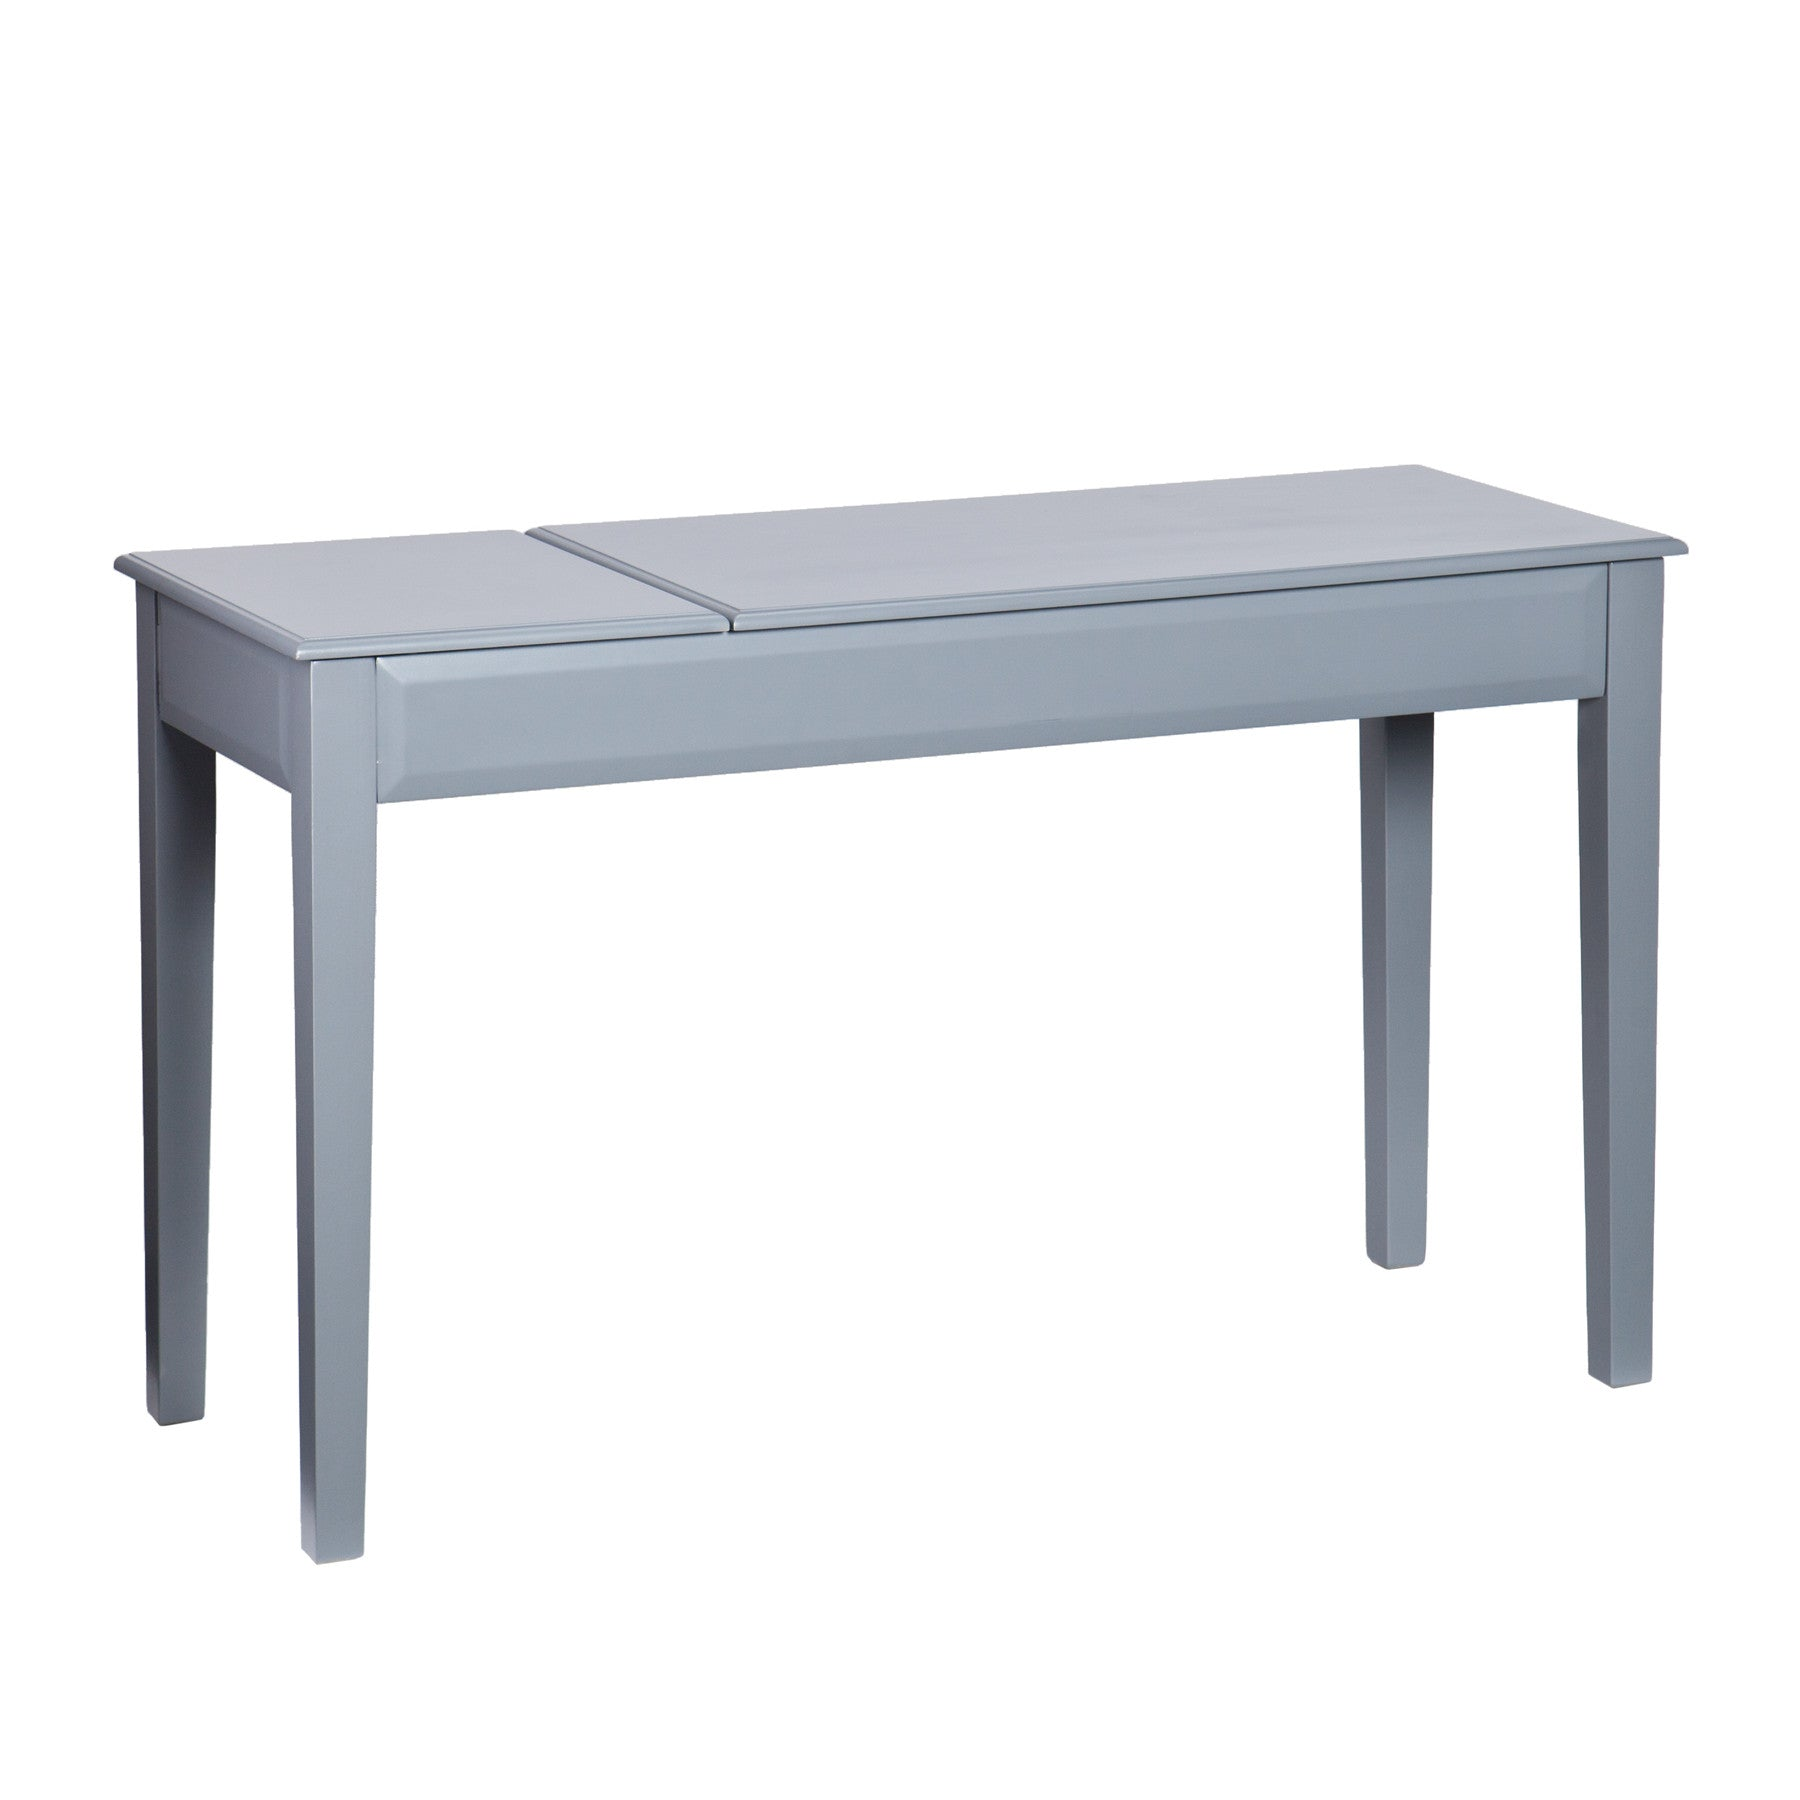 you we furniturebest for be purchase our one many make desk best well l goal customer is all your years gray value newport work desks satisfaction furniture shape guarantee that to office will come on sure